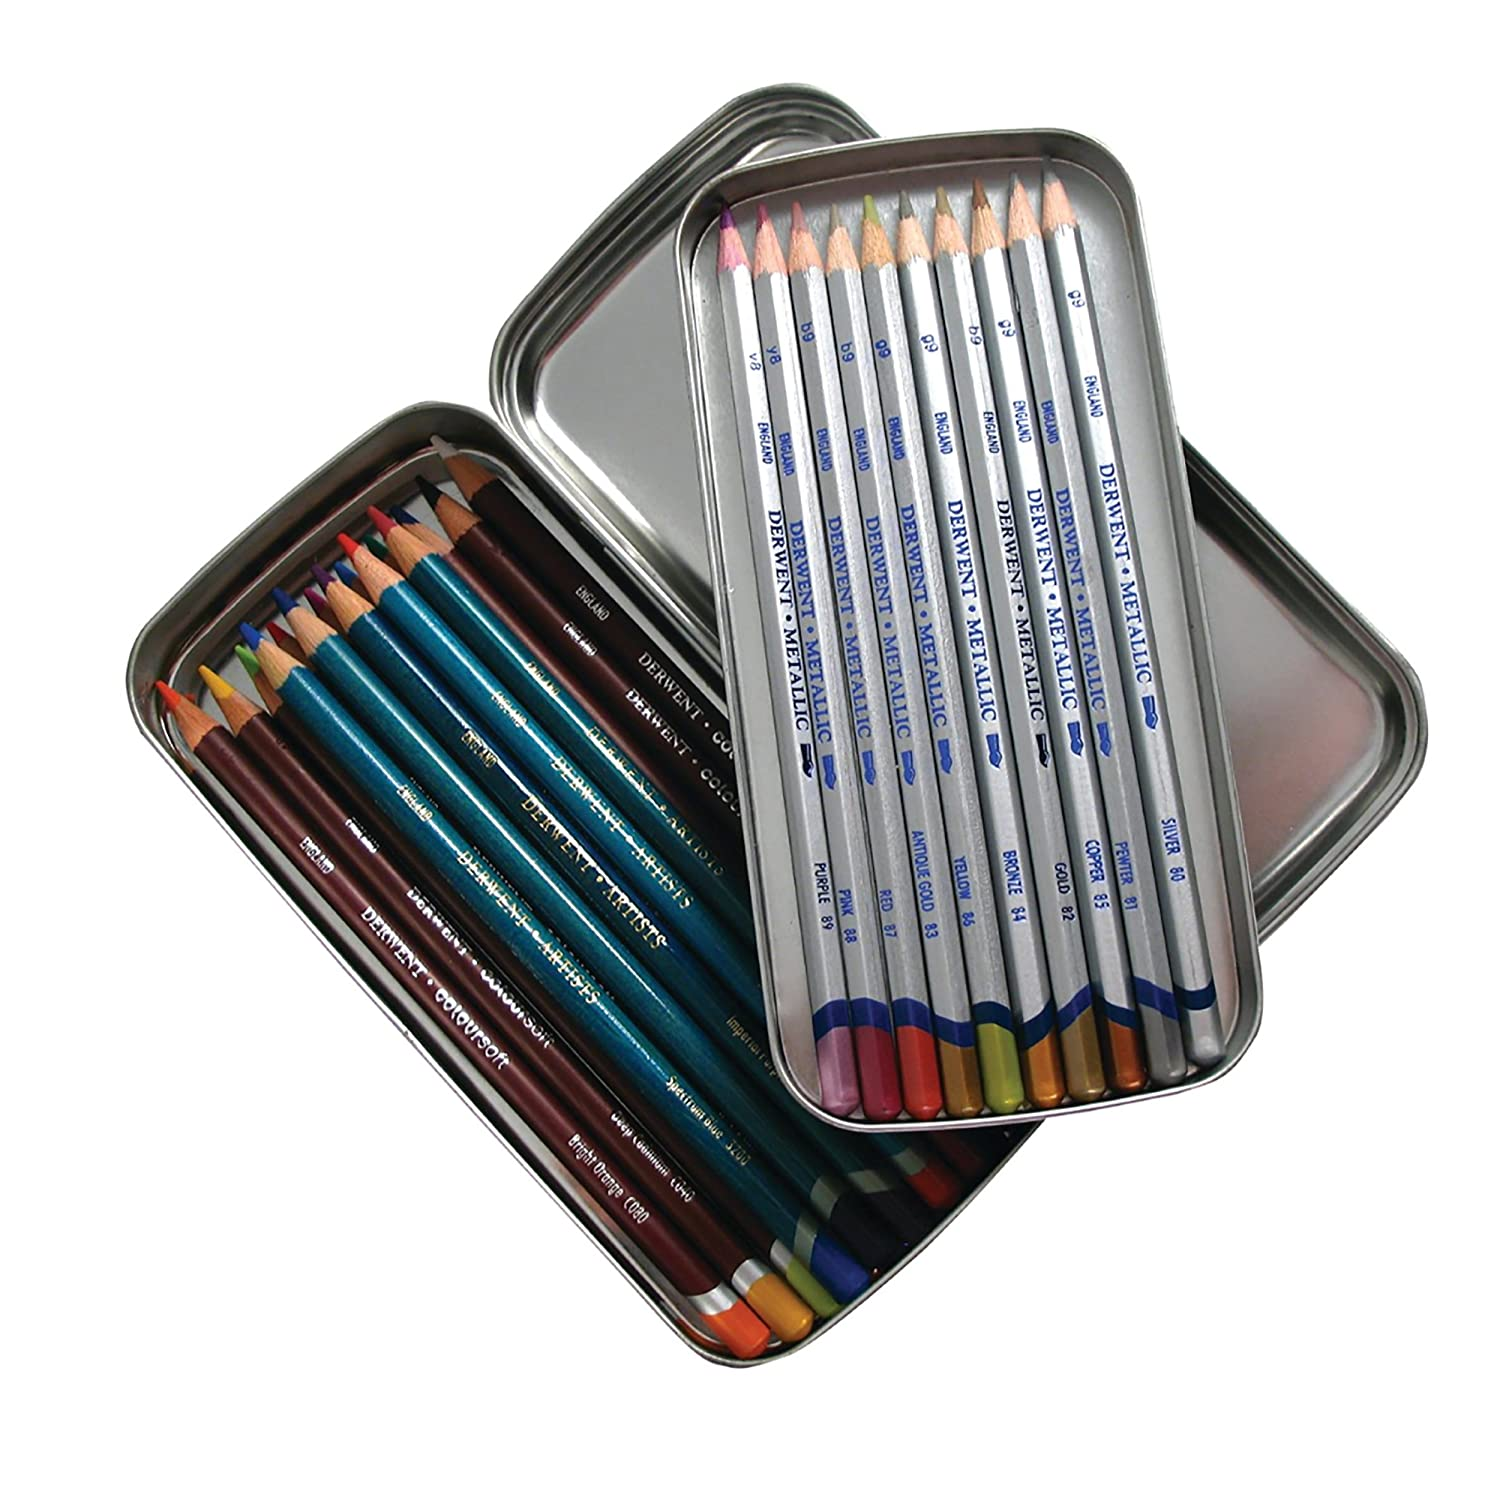 Derwent 2300582 Pencil Tin, Double Layered Storage with Removable Inner Tray, Professional Quality, 2300582 ACCO